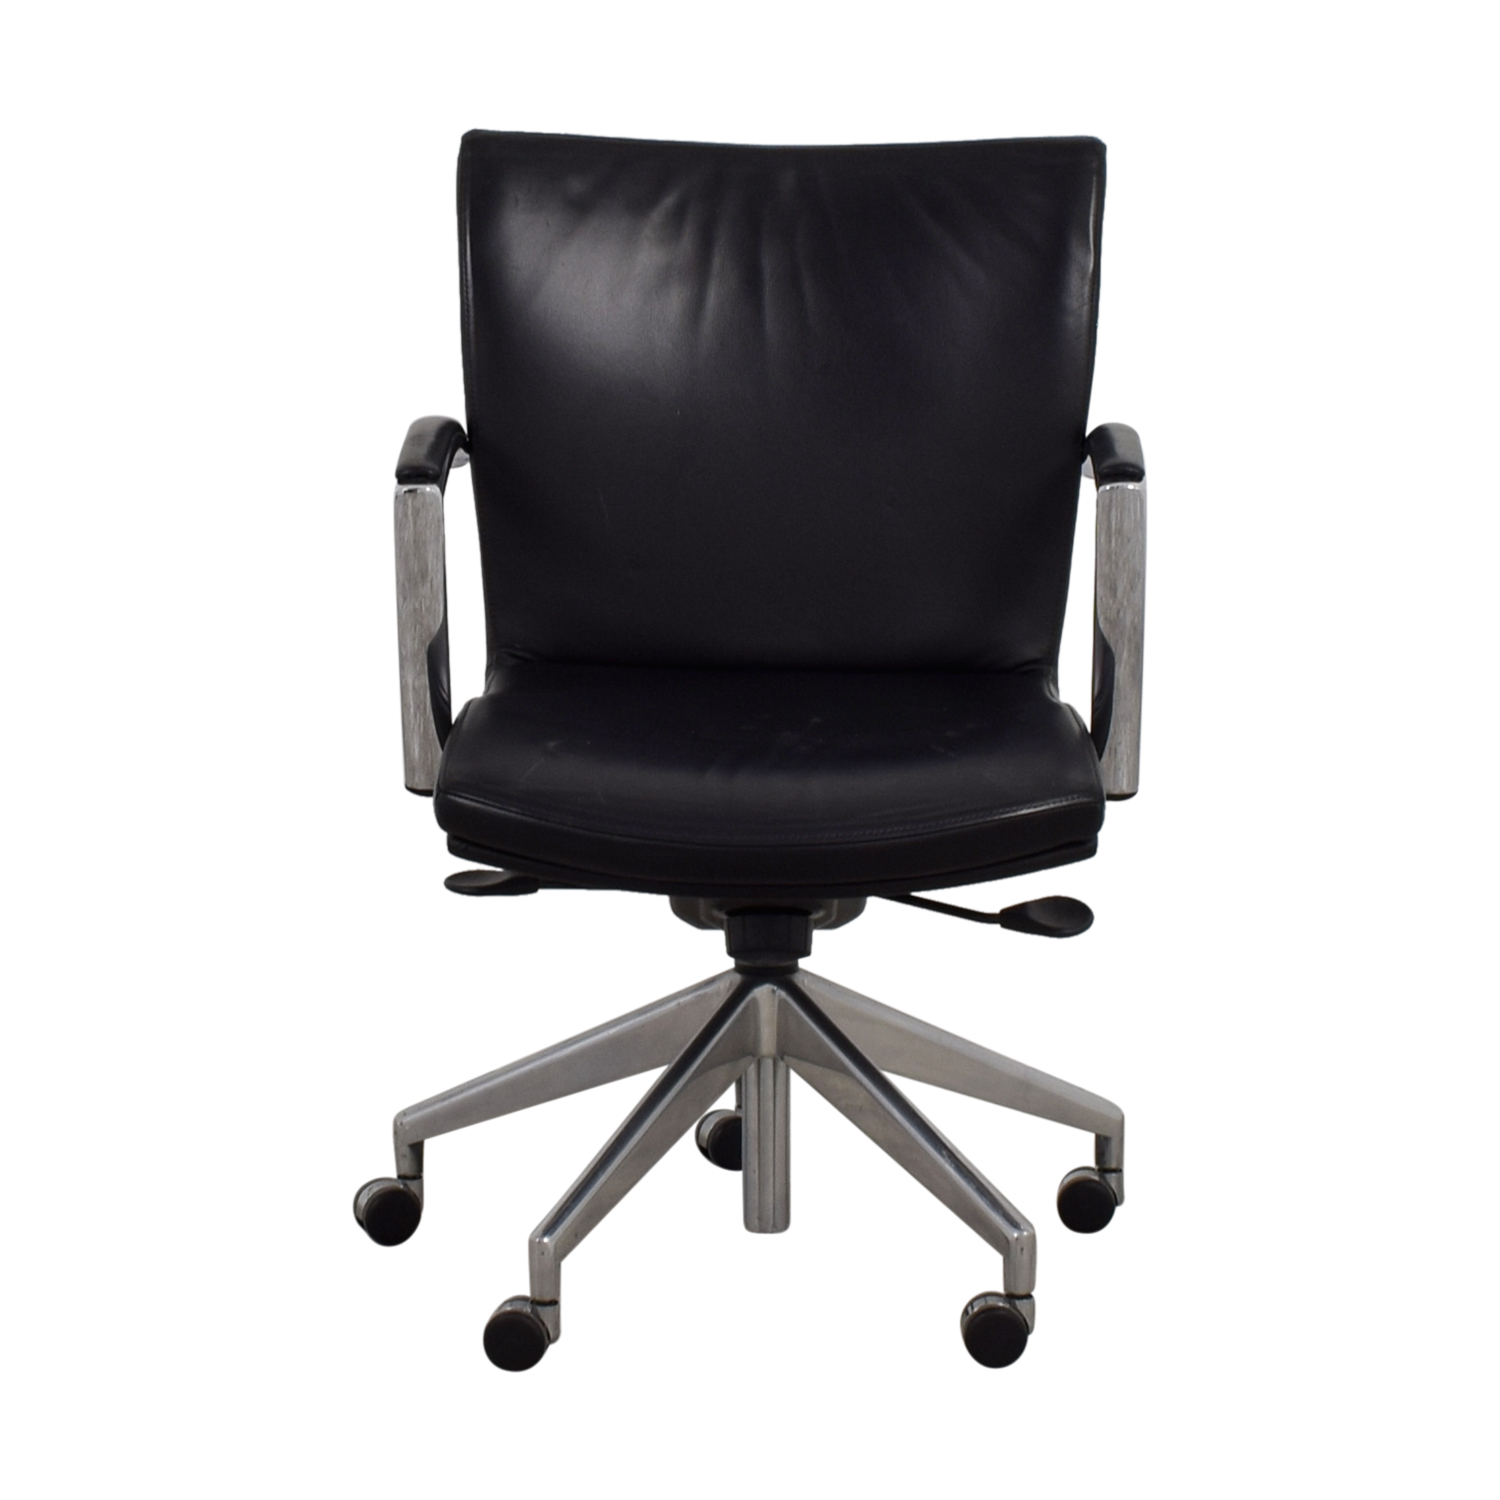 61% Off  Black Leather Desk Chair  Chairs